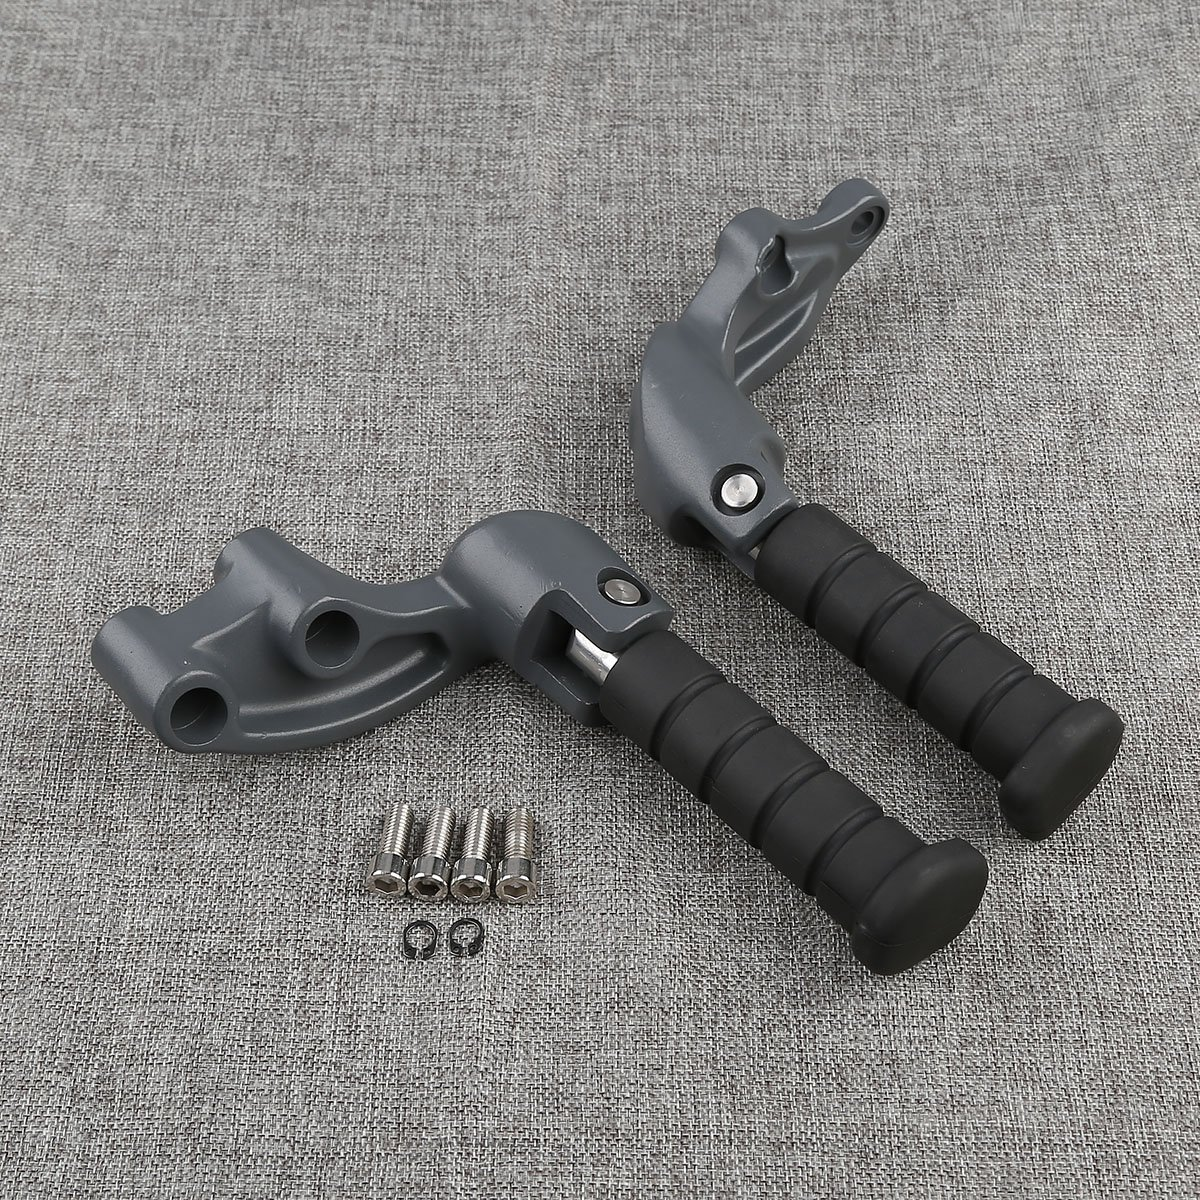 XMT-MOTO Passenger Foot Pegs W/Mounting Bracket For Indian scout 2015 2016 2017 2018,scout sixty 2016 2017 2018,scout bobber 2018